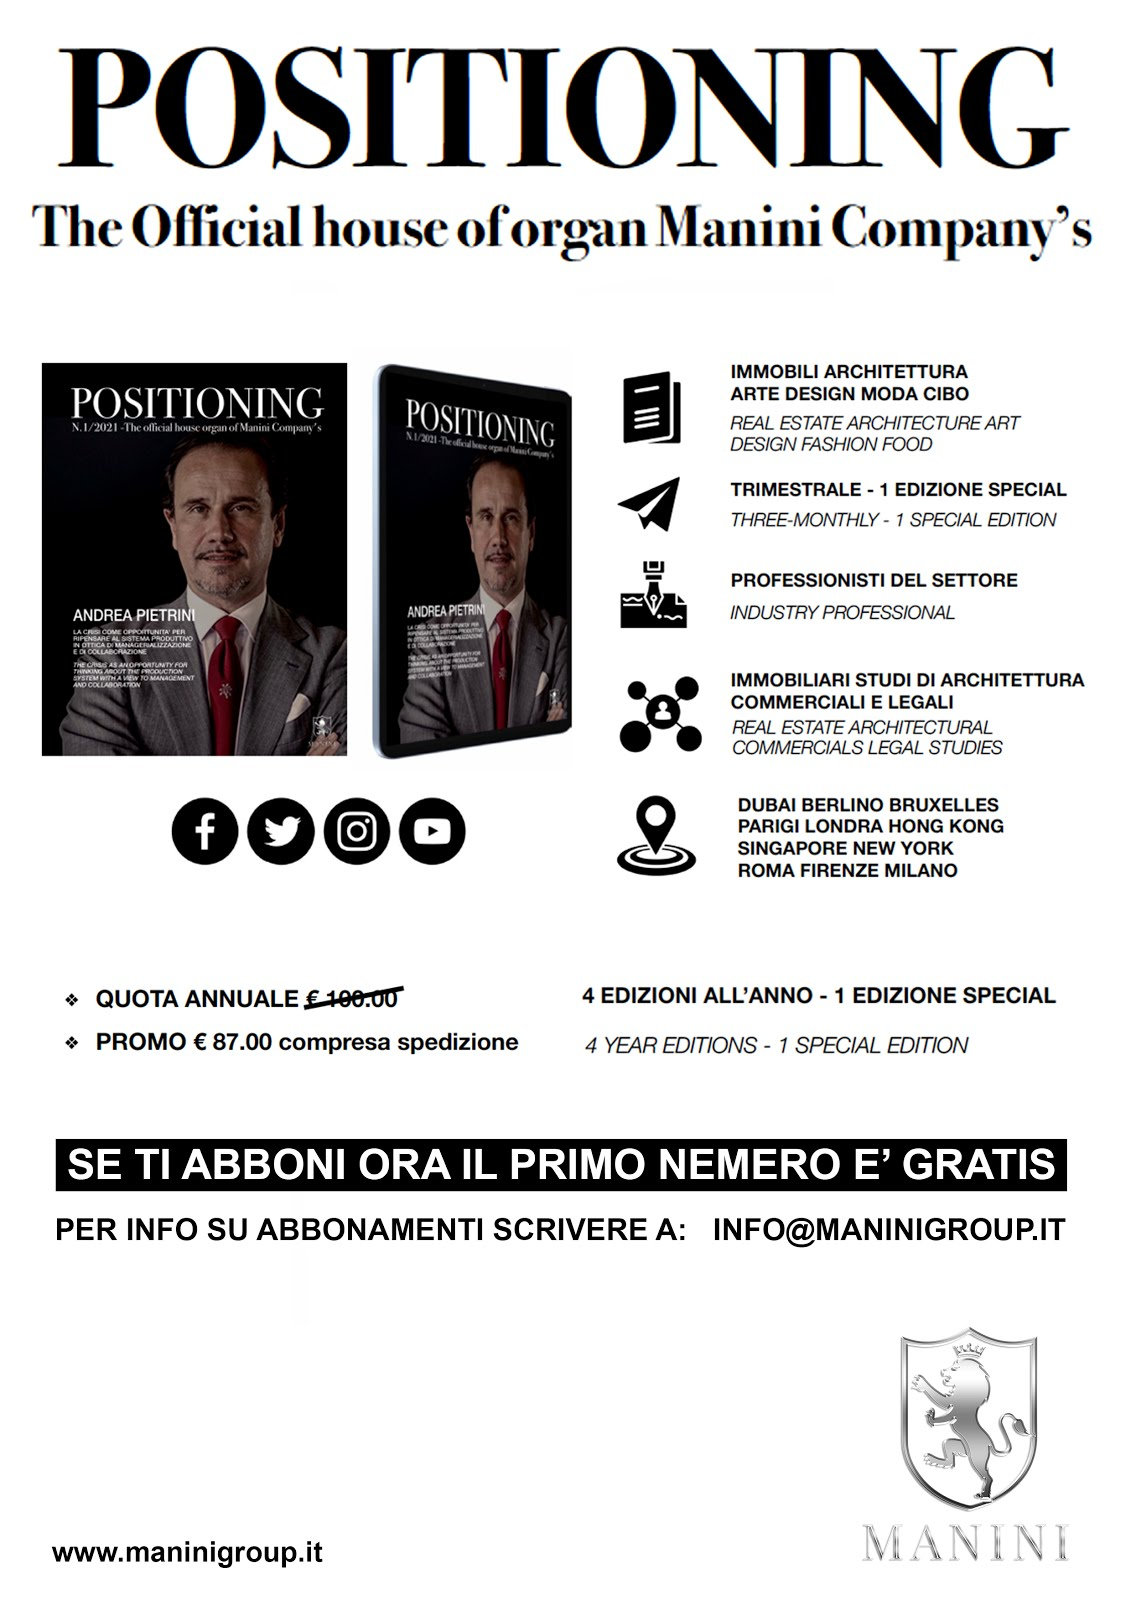 POSITIONING: RIVISTA UFFICIALE DI MANINI GROUP